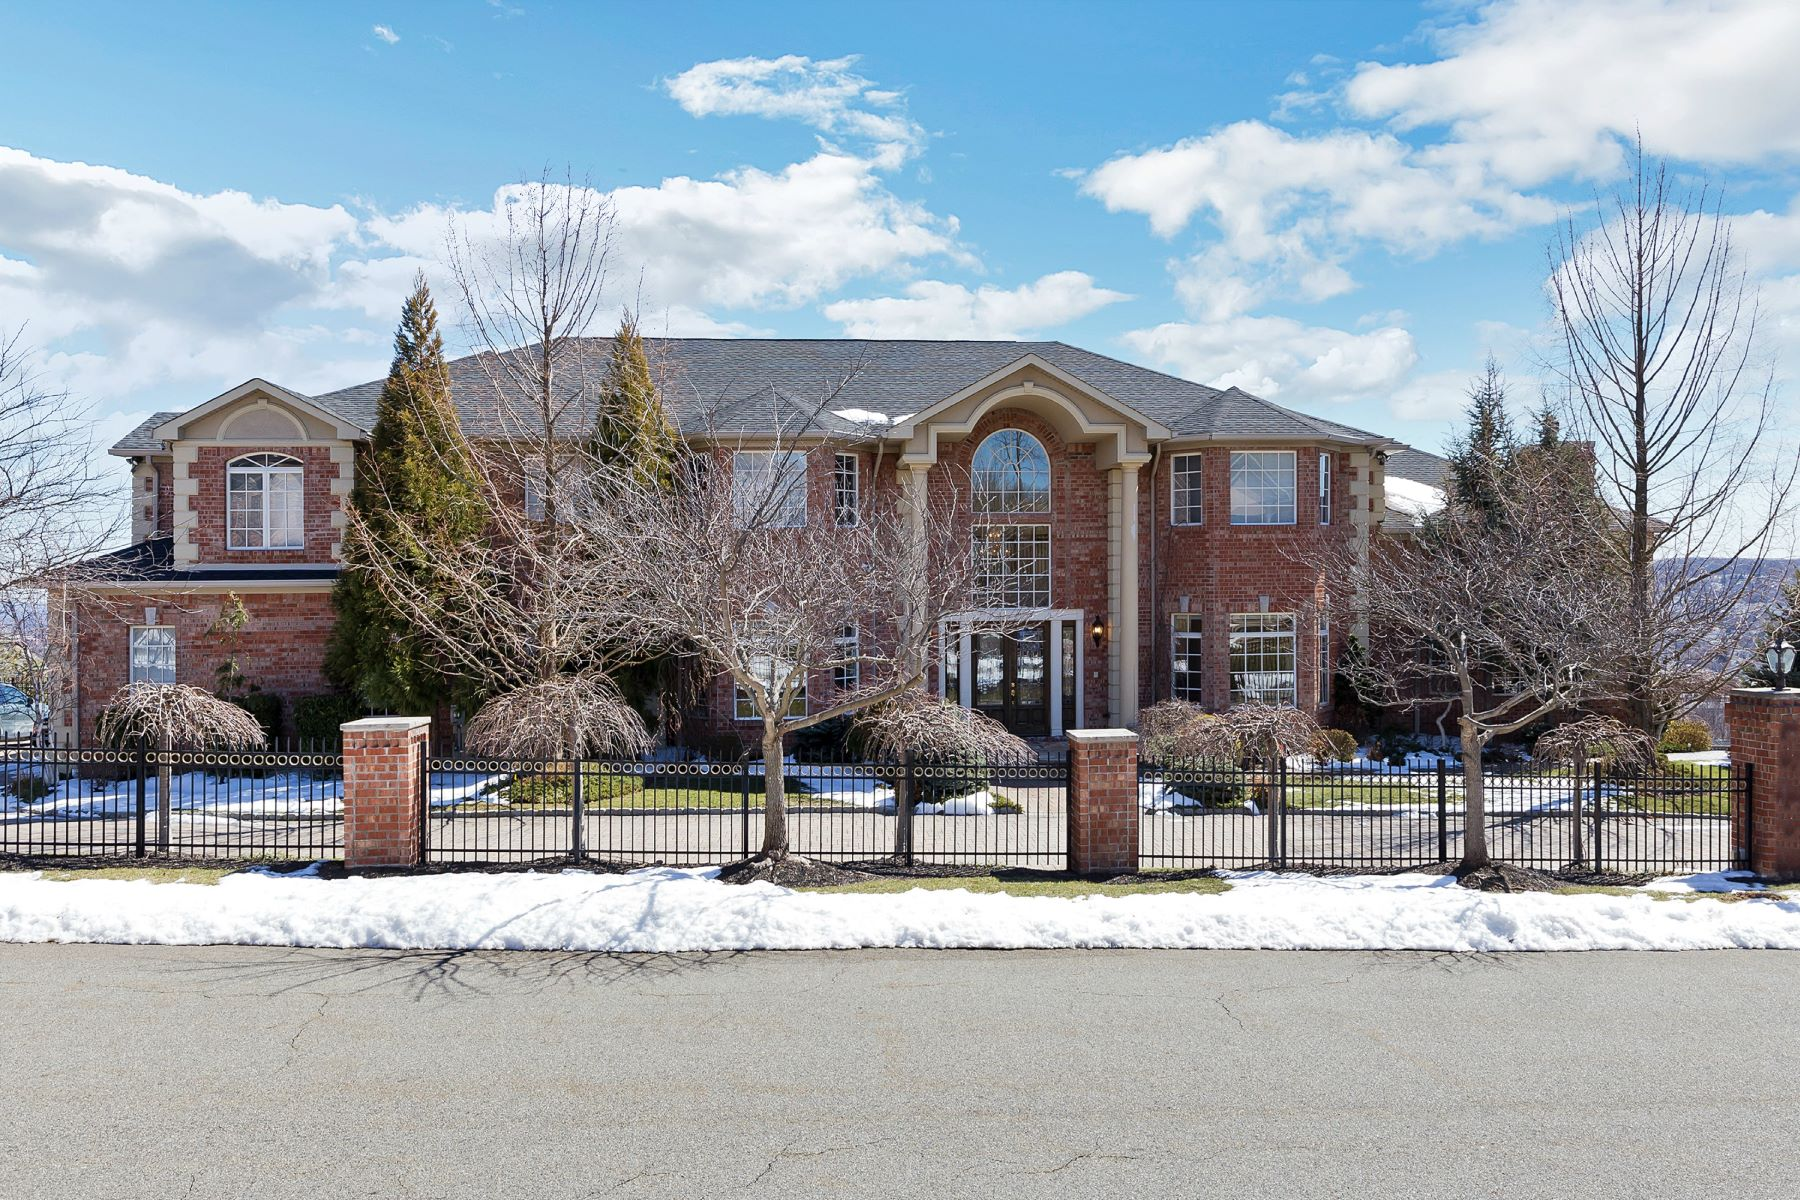 Single Family Home for Sale at Breathtaking Views! 26 Mountainview Court Totowa, 07512 United States